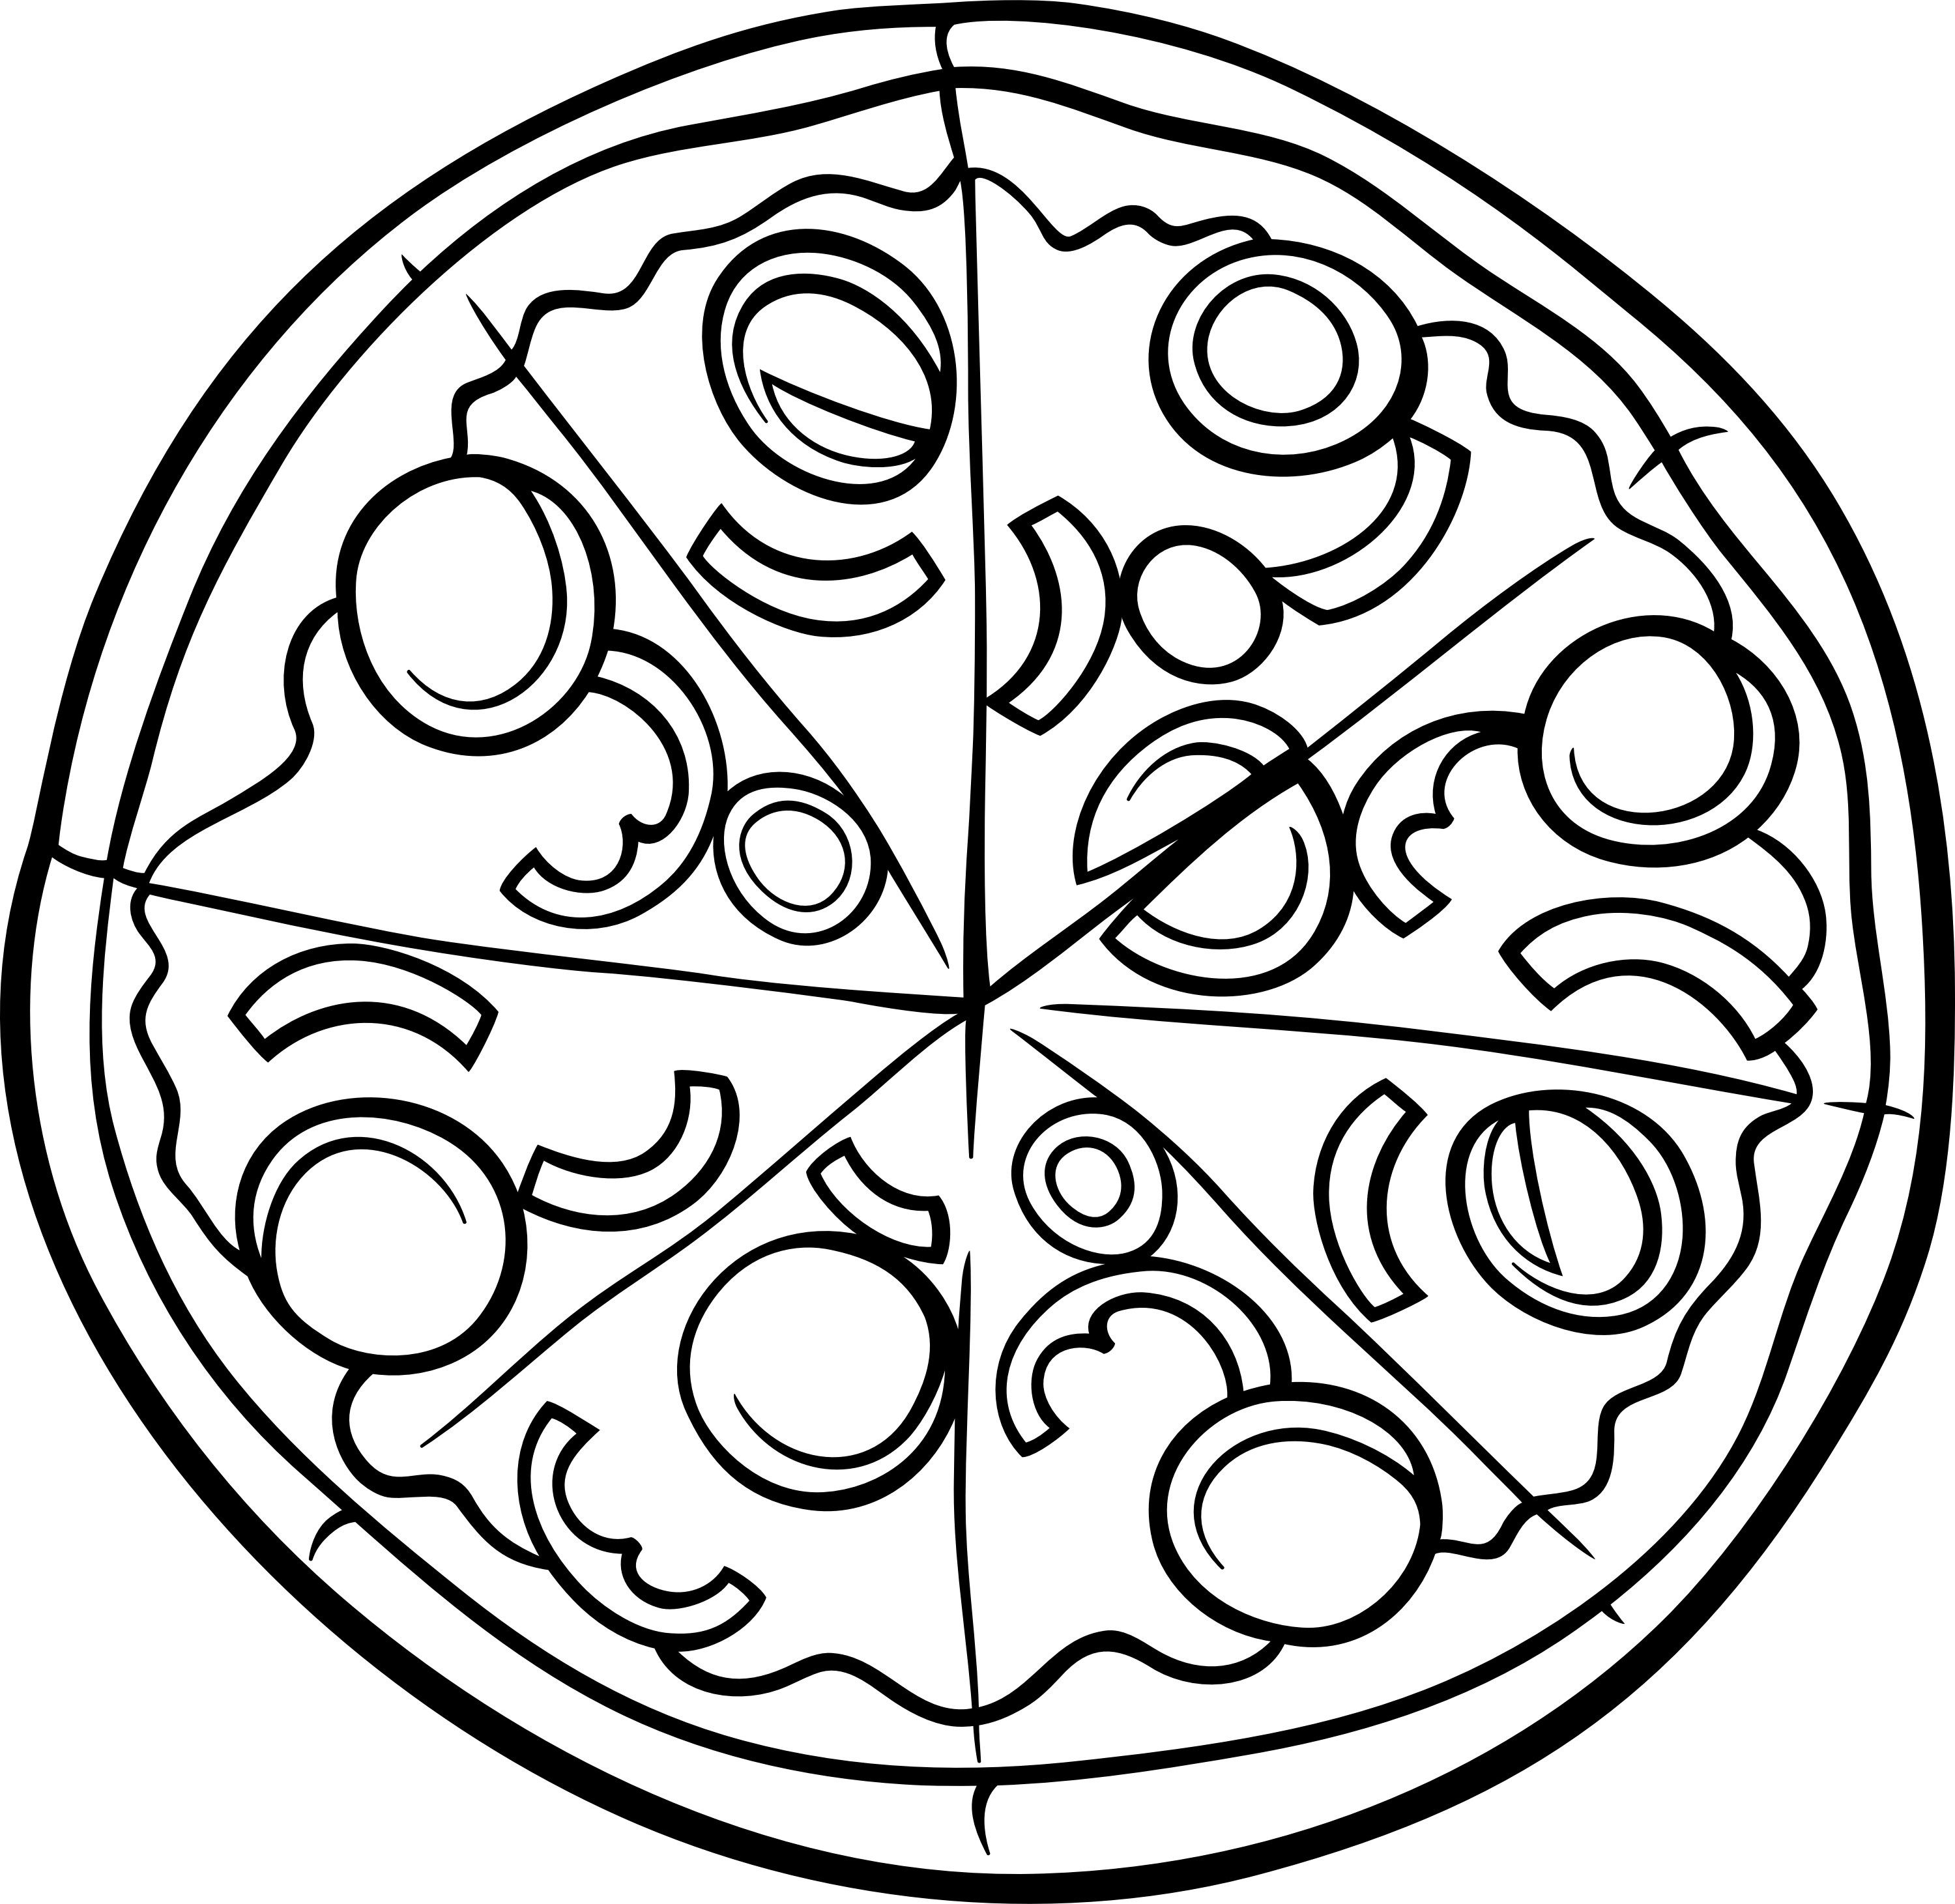 pizza coloring page printable | Cooking with a twist | Pinterest